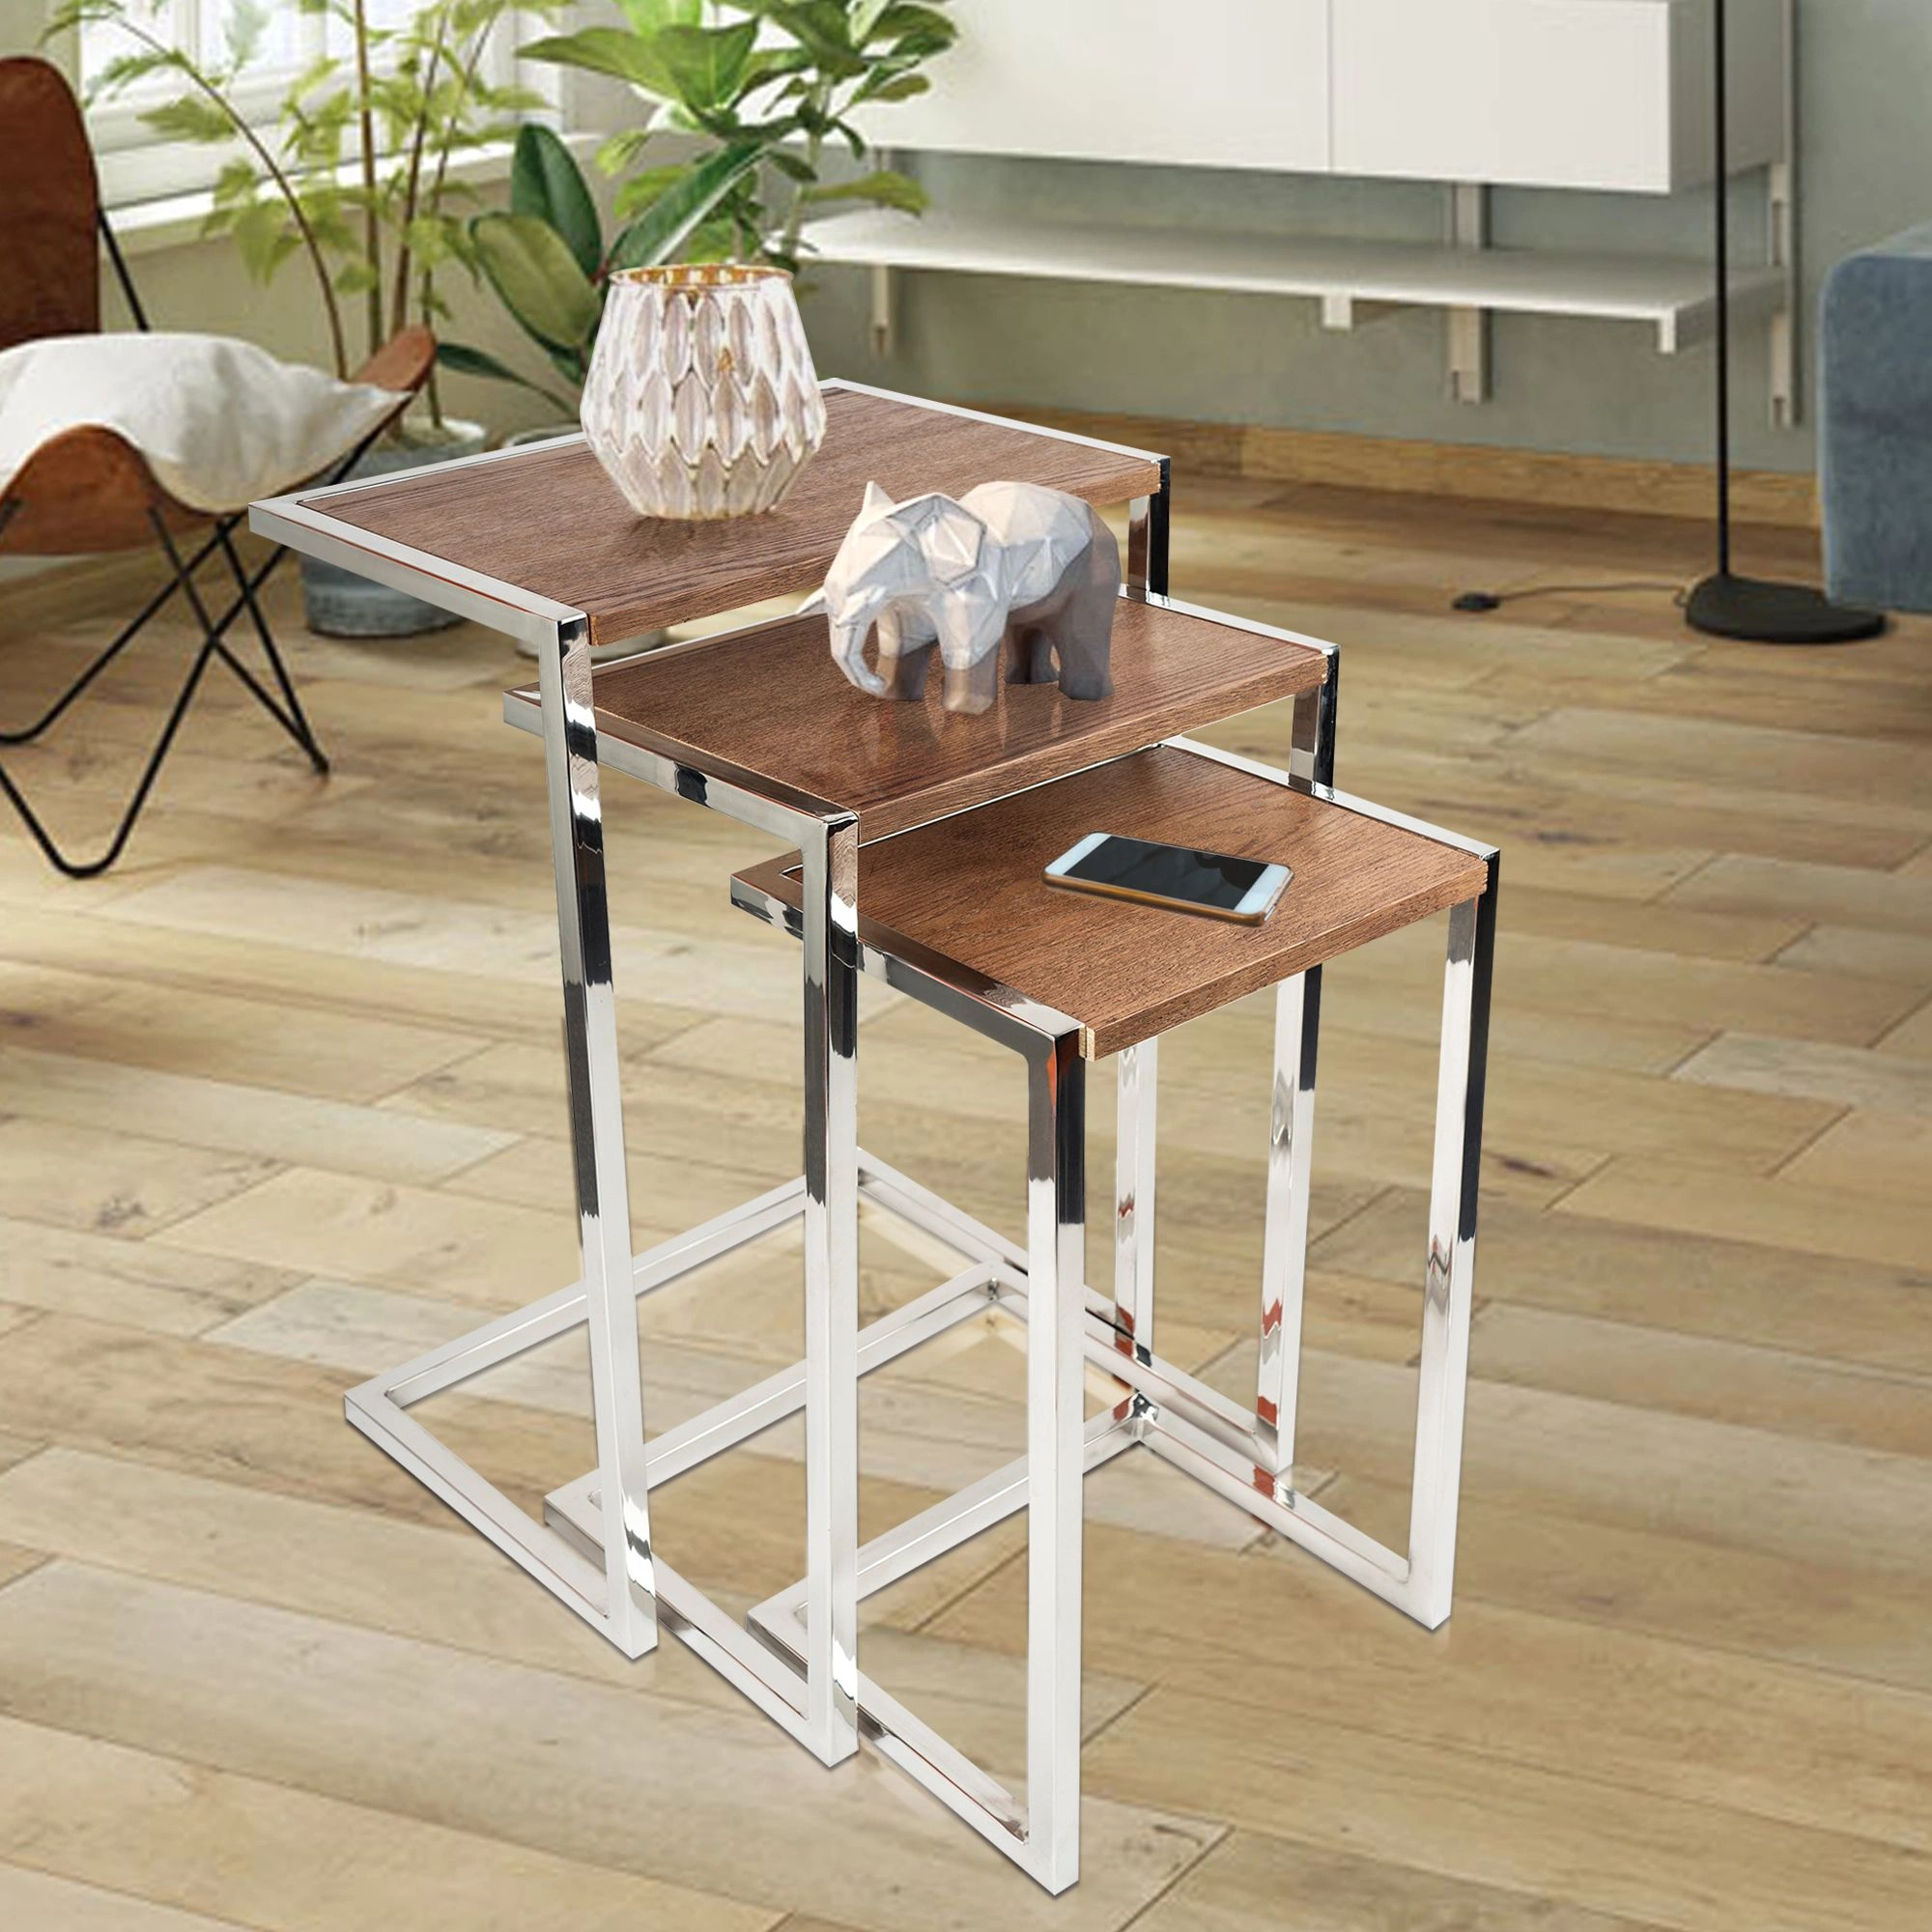 SU-174A - Side Table- Stainless Steel with wood veneer